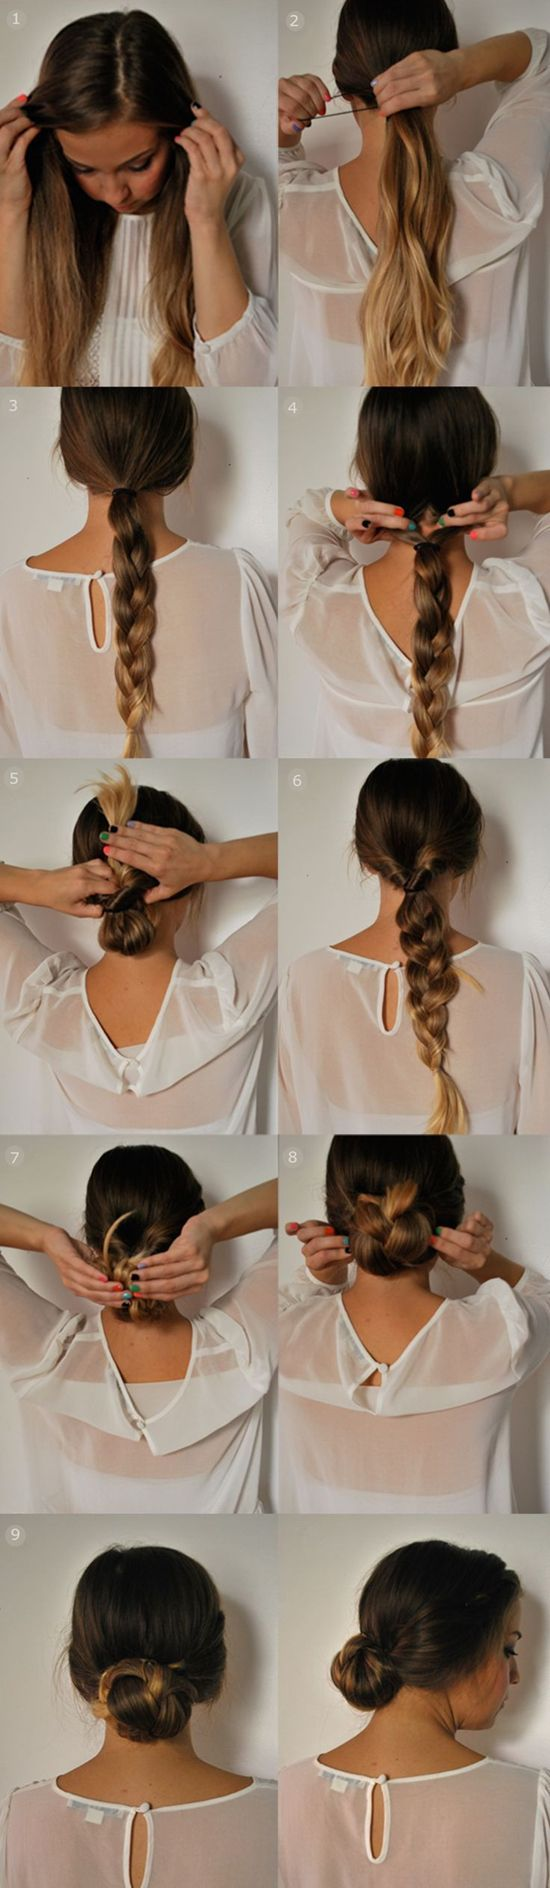 Quick 5 minutes updo: Braided Ponytail Updo pinterest 5 minutes updo: Quick Twist for Shorter Hair thebeautydepartment.com 5 minutes hairstyles for long hair: The Knotted Pullback cutegirlshairstyles.com Watch the video to get the full directions. Easy Romantic Valentine's Day Hairstyle http://she-beautiful.blogspot.ca/ Simple and cute side braid. Fun and easy to do hairstyle. Messy French Twist[Read the Rest]